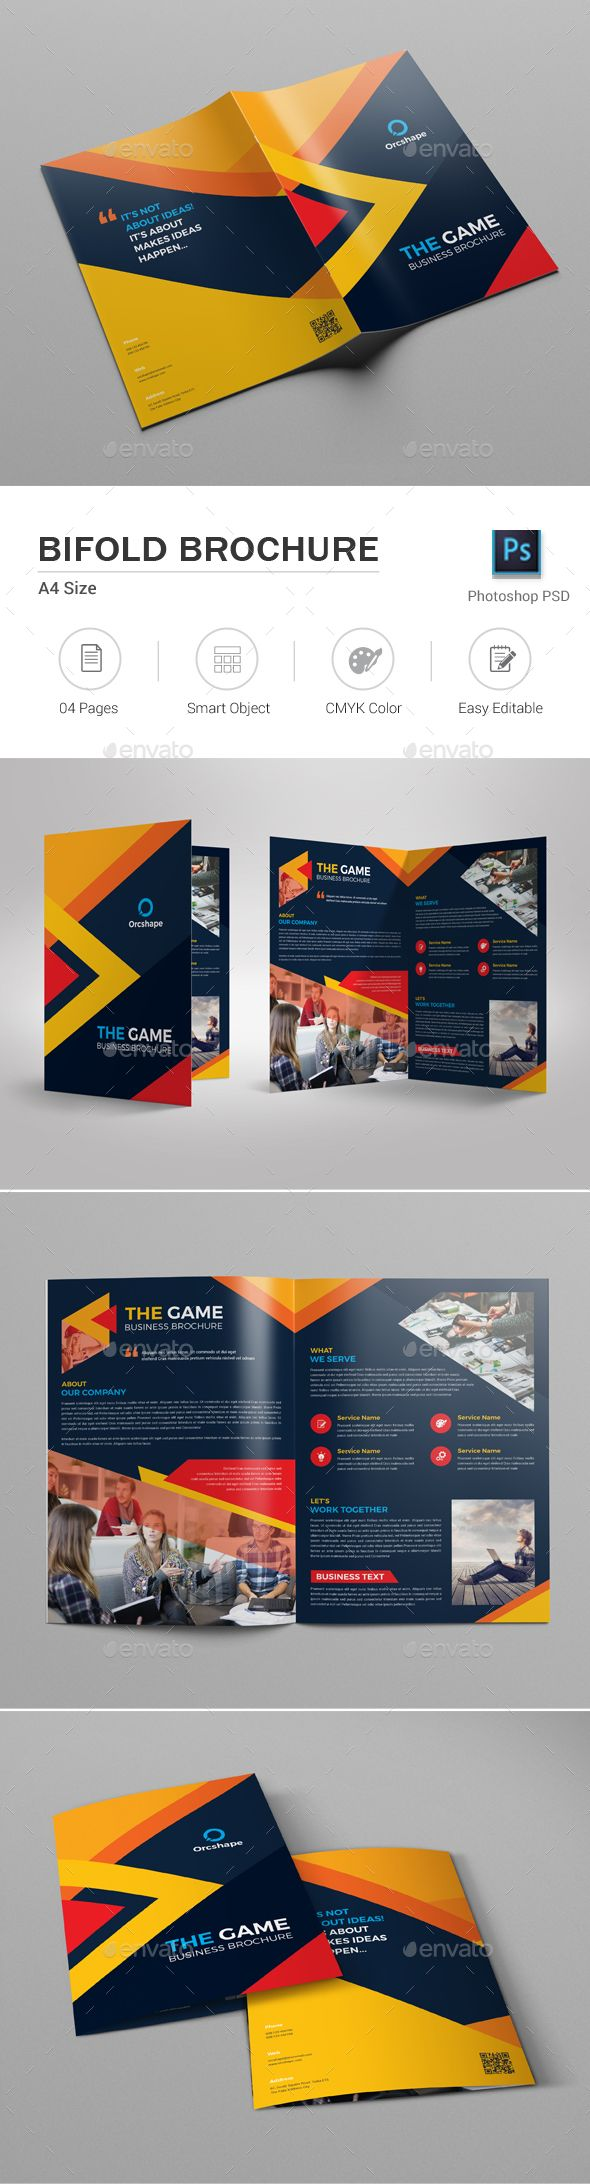 Bifold Brochure — Photoshop PSD #business #office • Download ➝ https://graphicriver.net/item/bifold-brochure/19660320?ref=pxcr